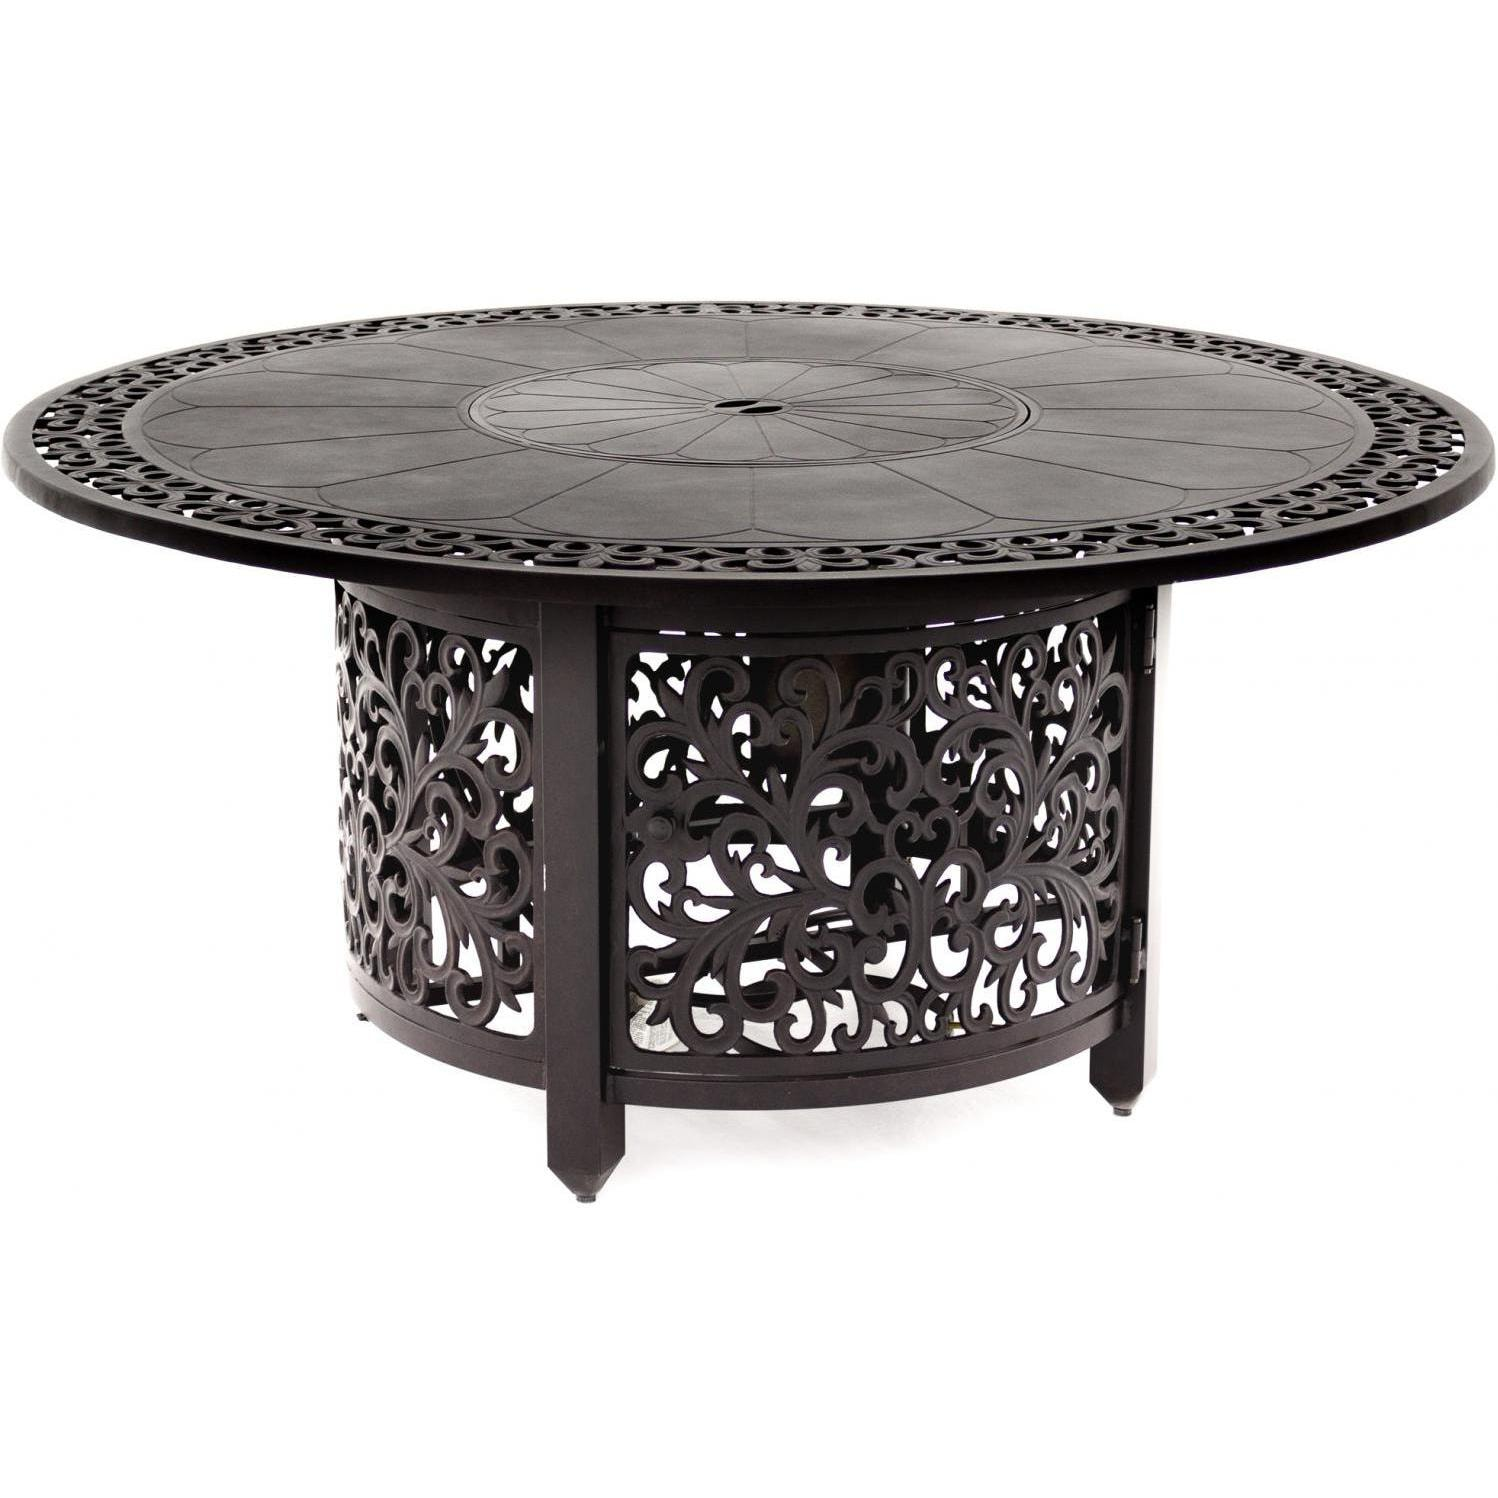 60 Inch Propane Fire Pit Dining Table By Lakeview Outdoor Designs   Antique  Bronze